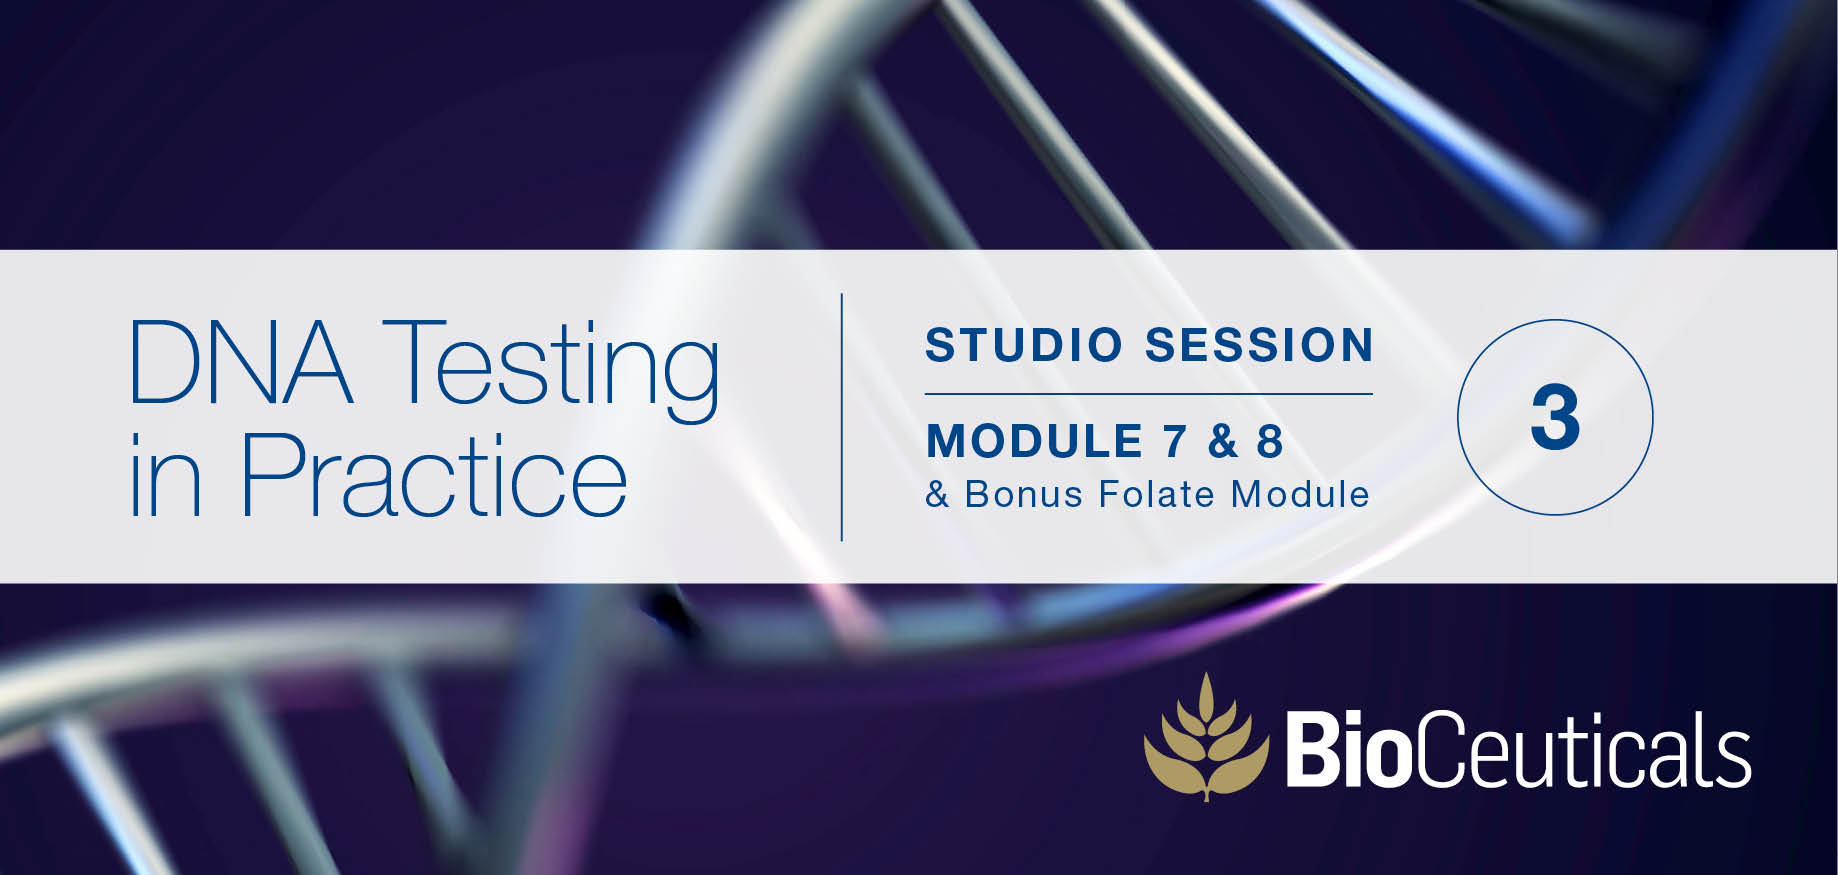 DNA testing in practice: studio session 3 - April 10, 2019